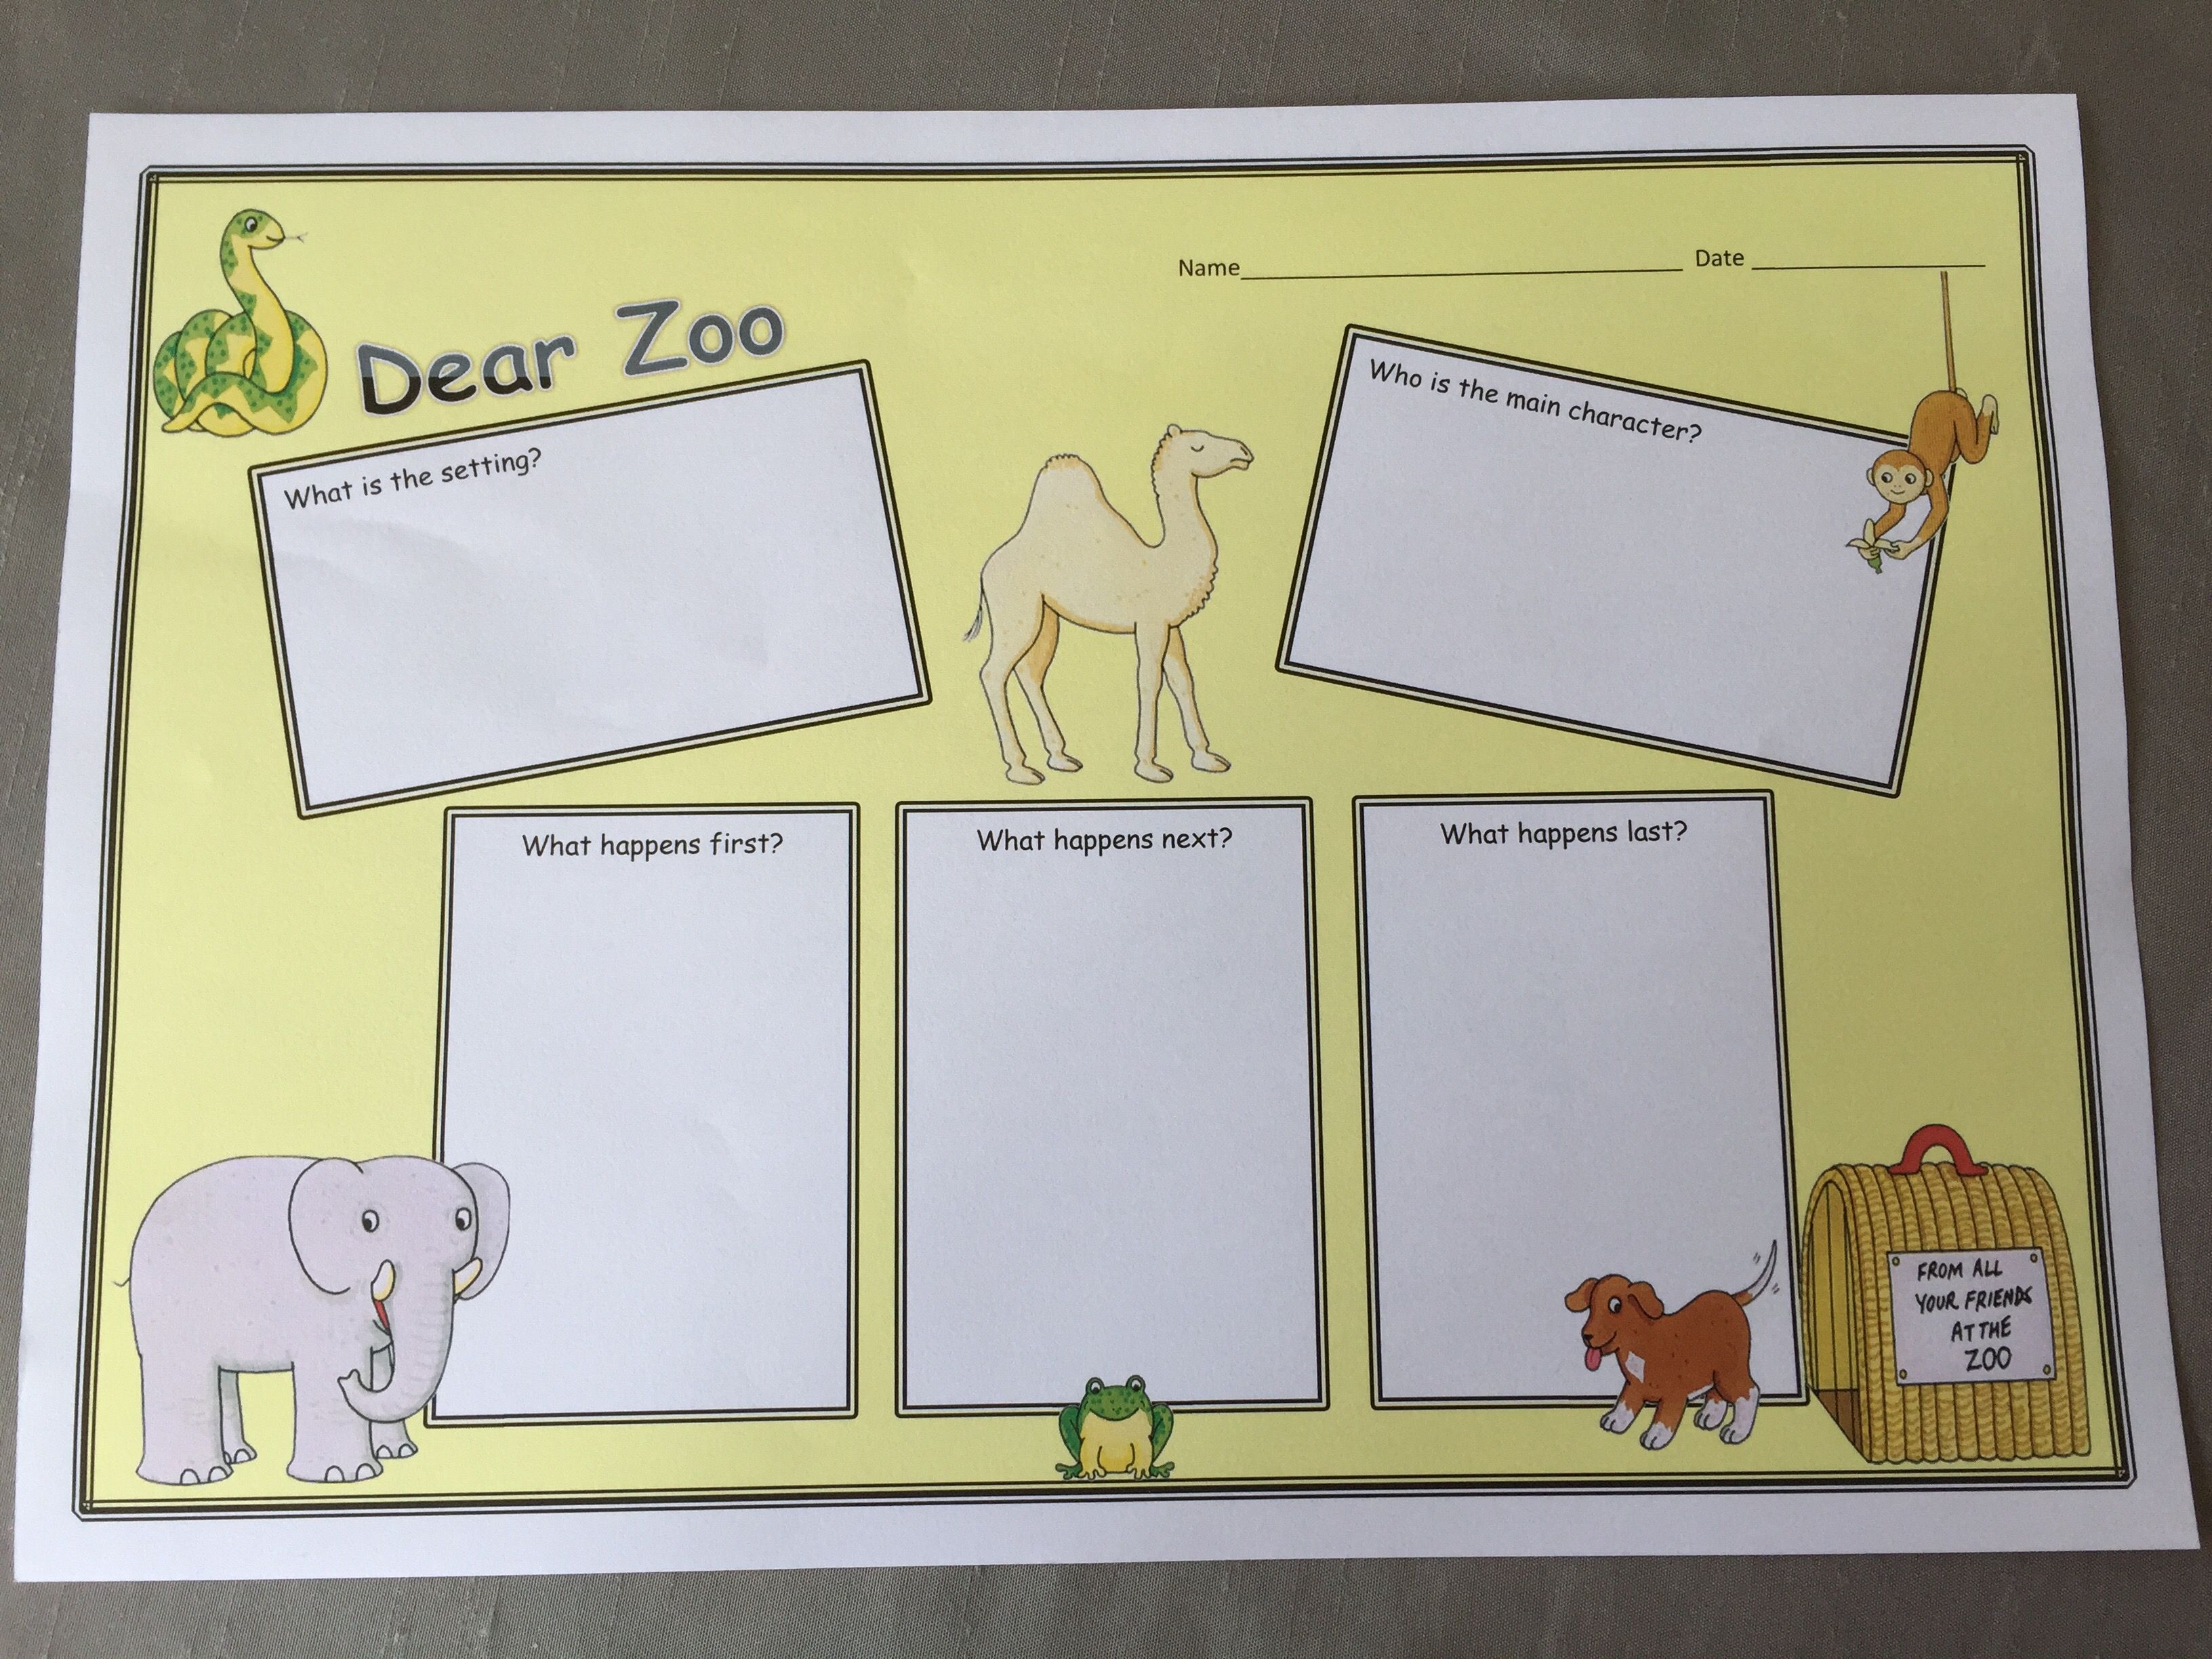 Dear Zoo Book Review Writing Frame Based On Designs From Twinkl I Made My Own Using Word